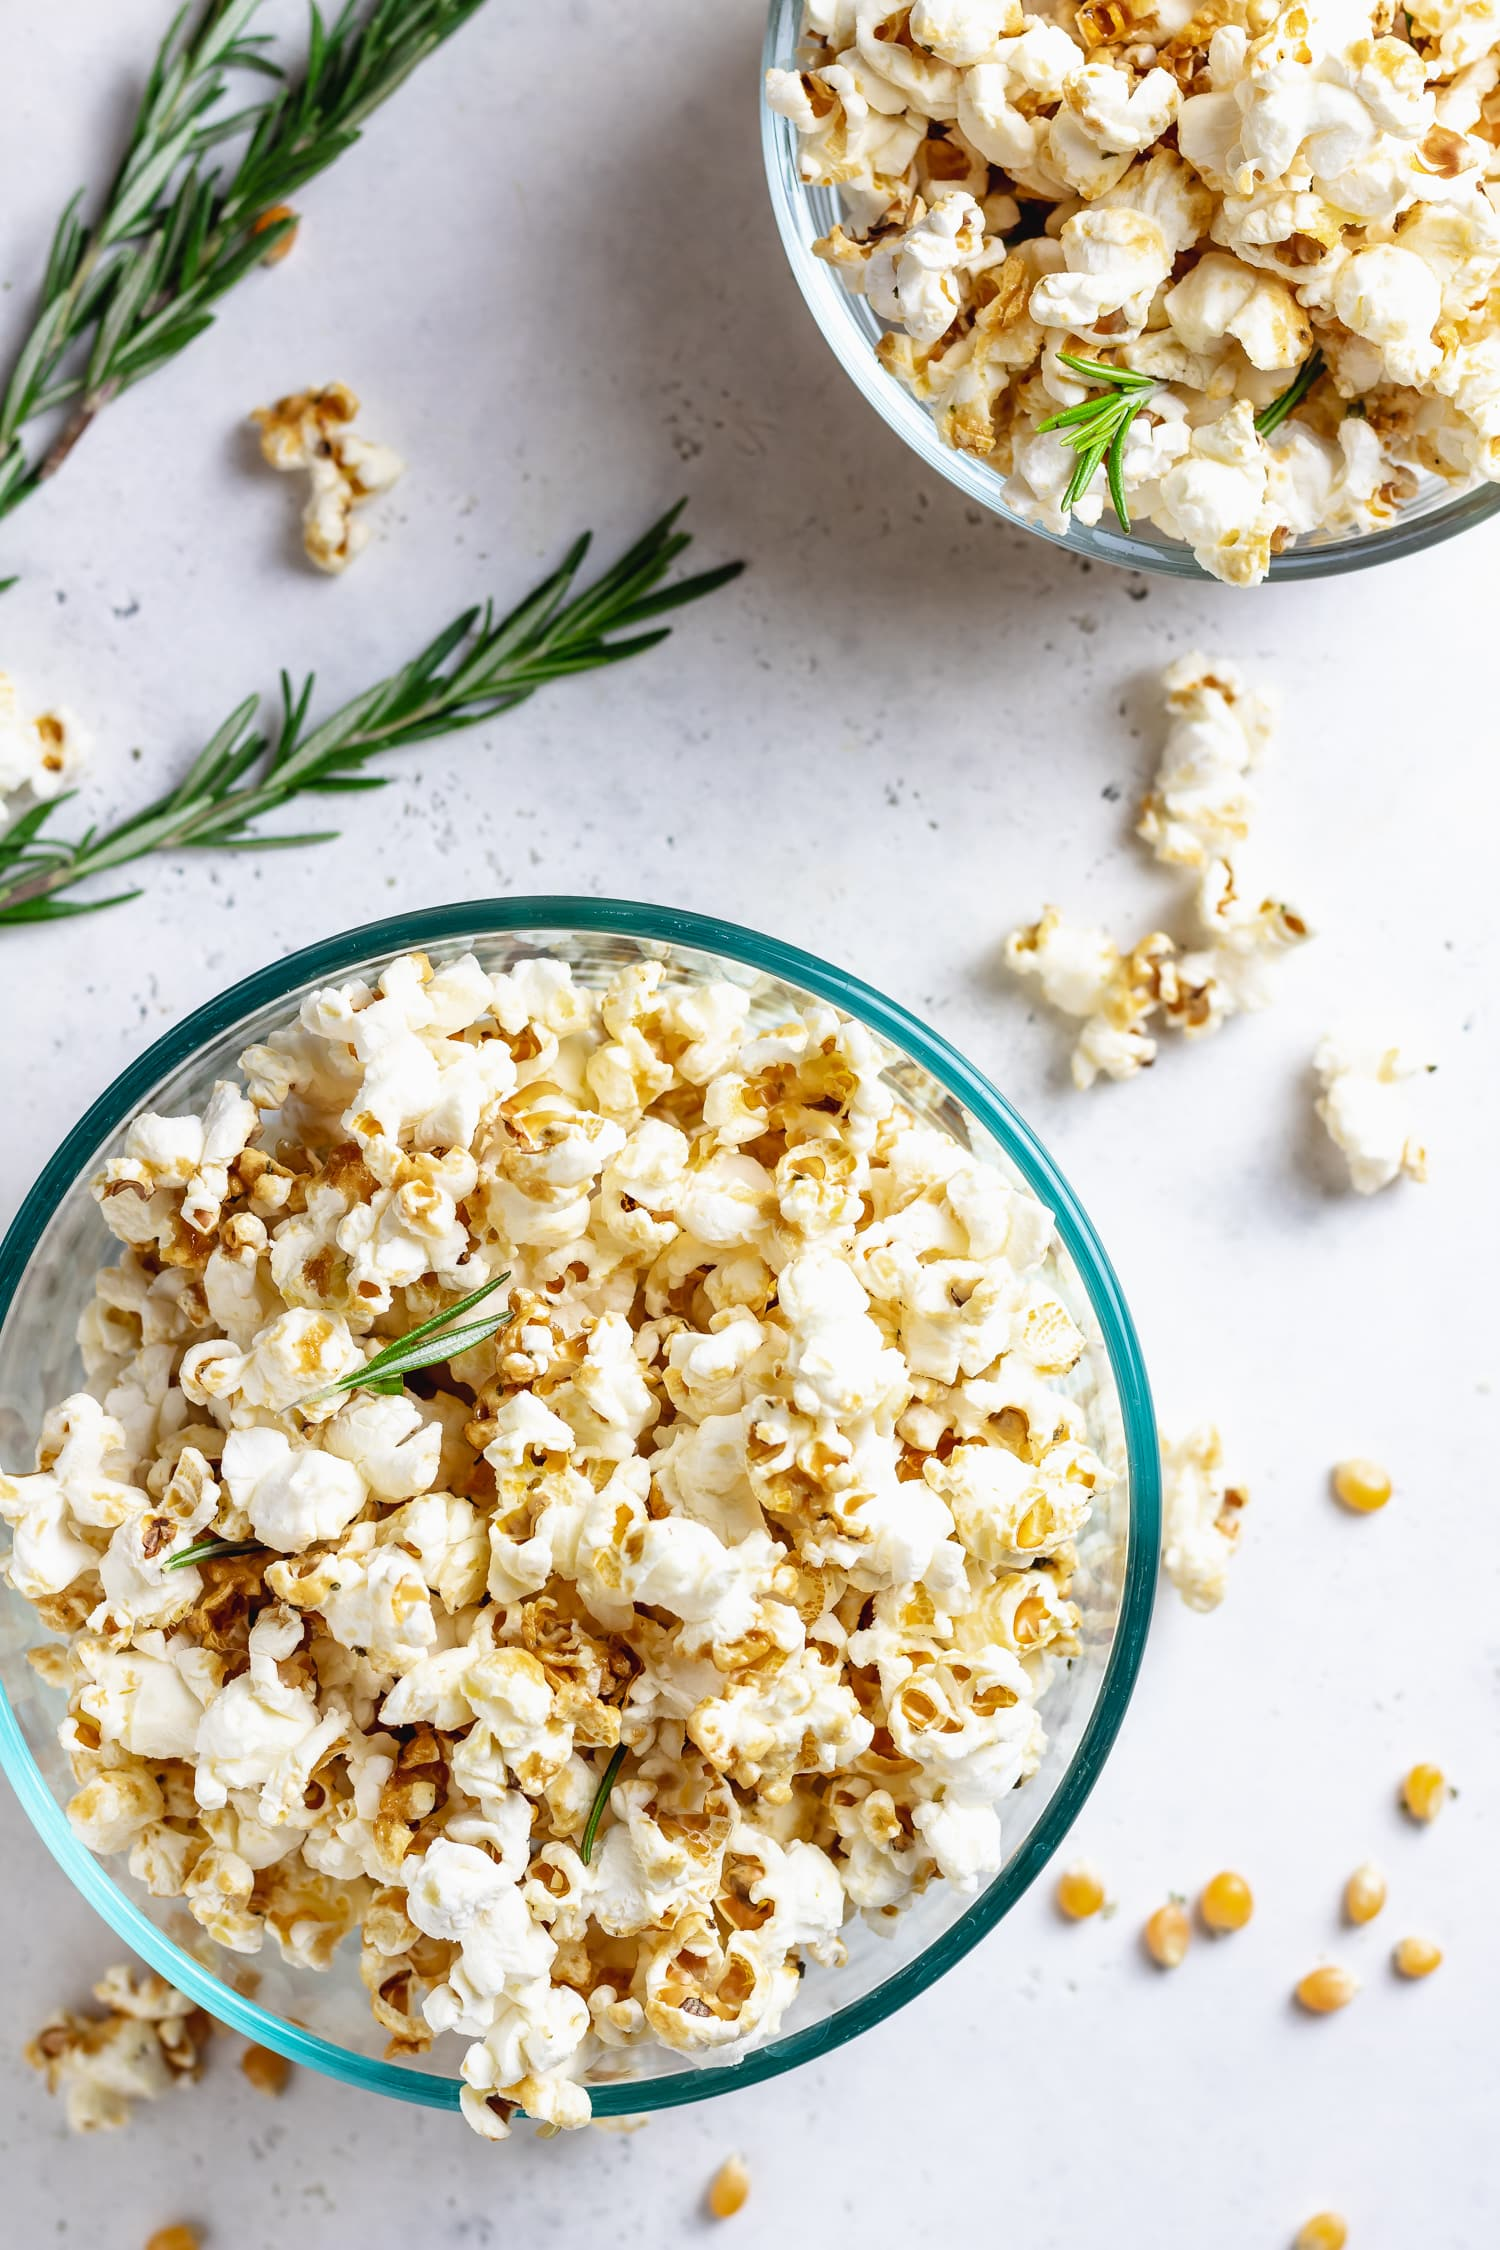 maple rosemary popcorn in bowls